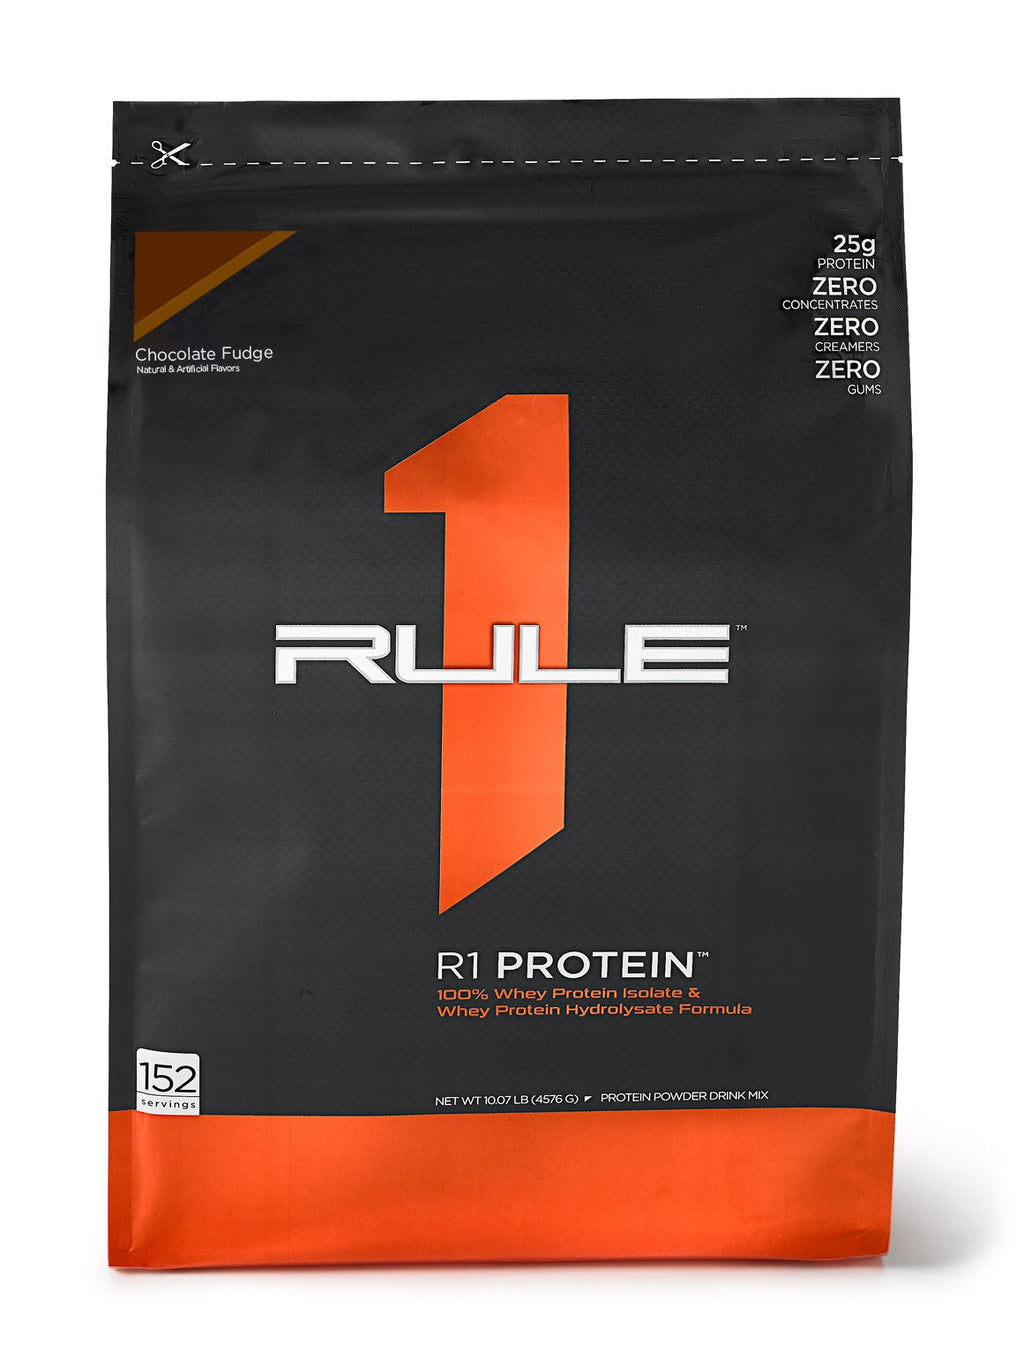 R1 Protein Isolate, 152 Servings - 10.06 lb